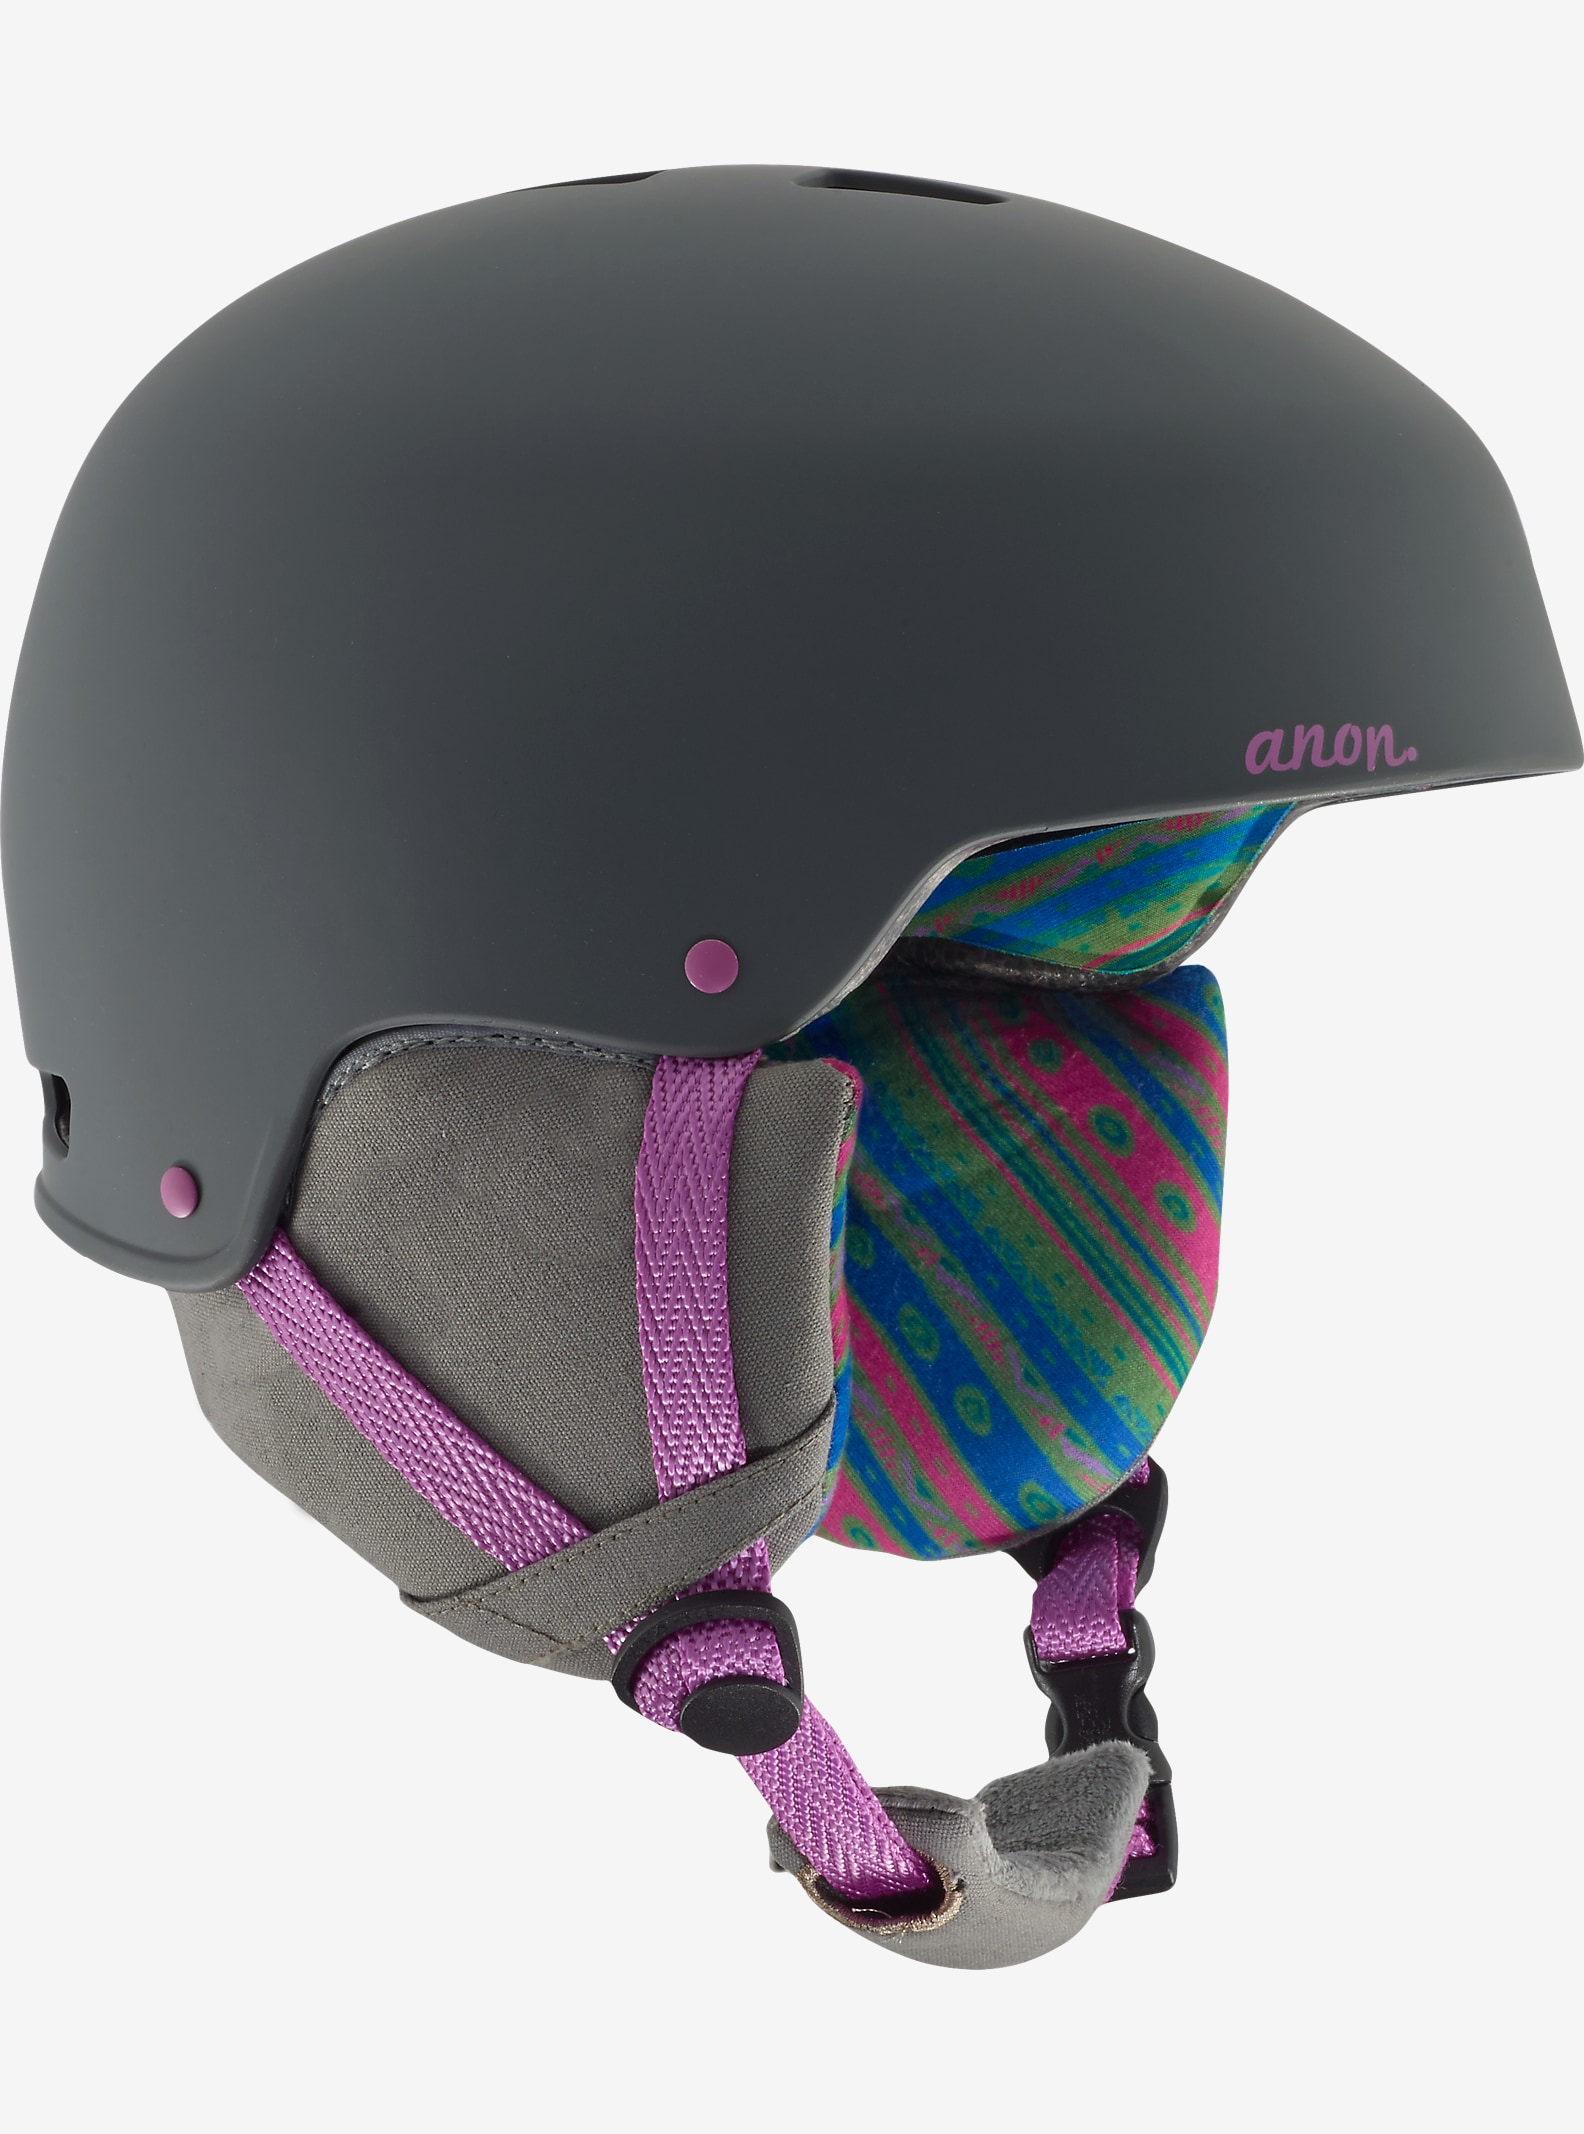 anon. Lynx Helmet shown in Tribe Gray